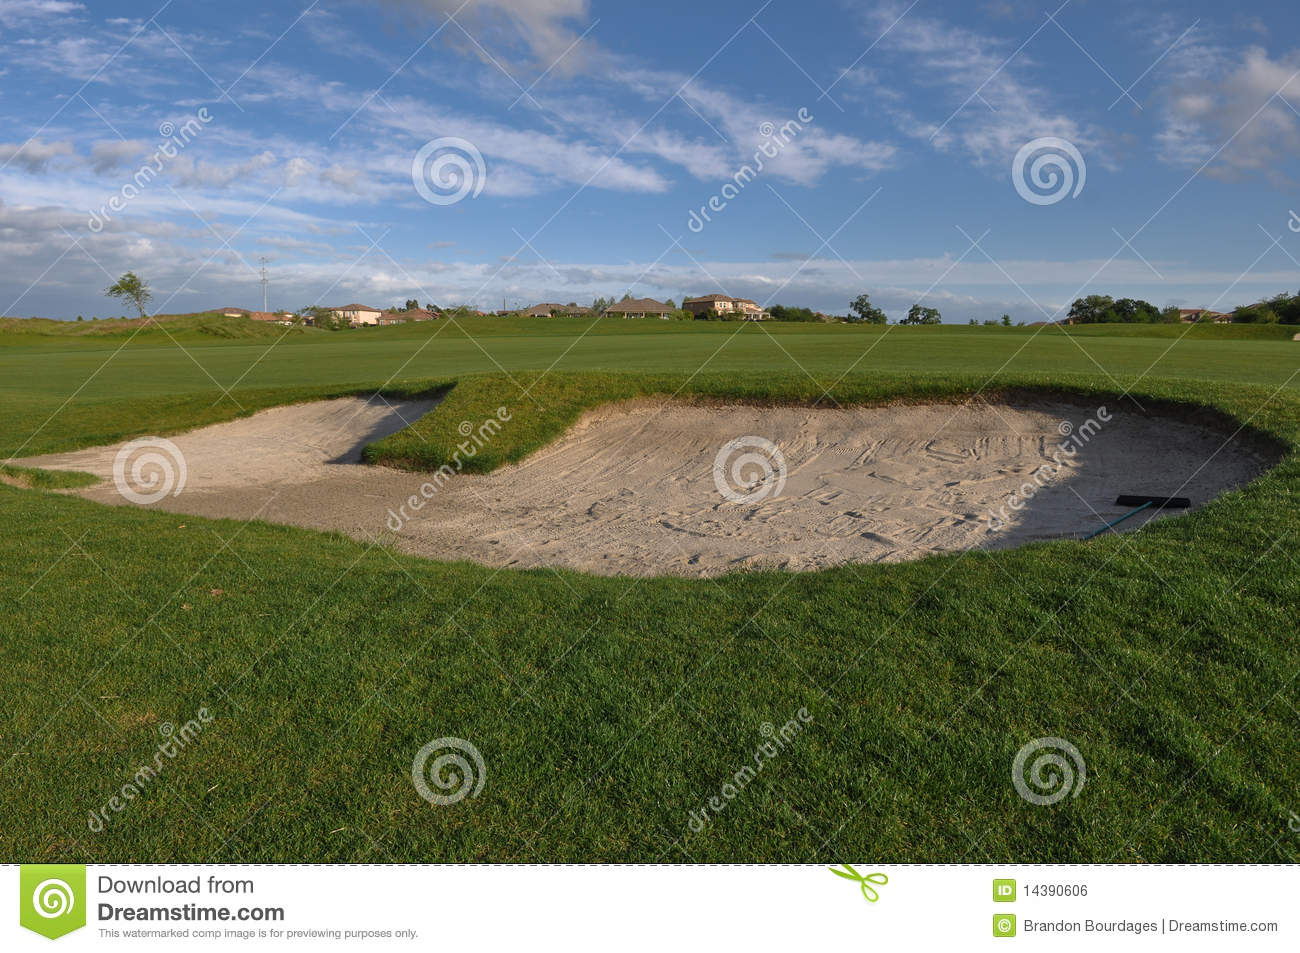 Sand trap on golf course royalty free stock image image 14390606 - Wand trap ...